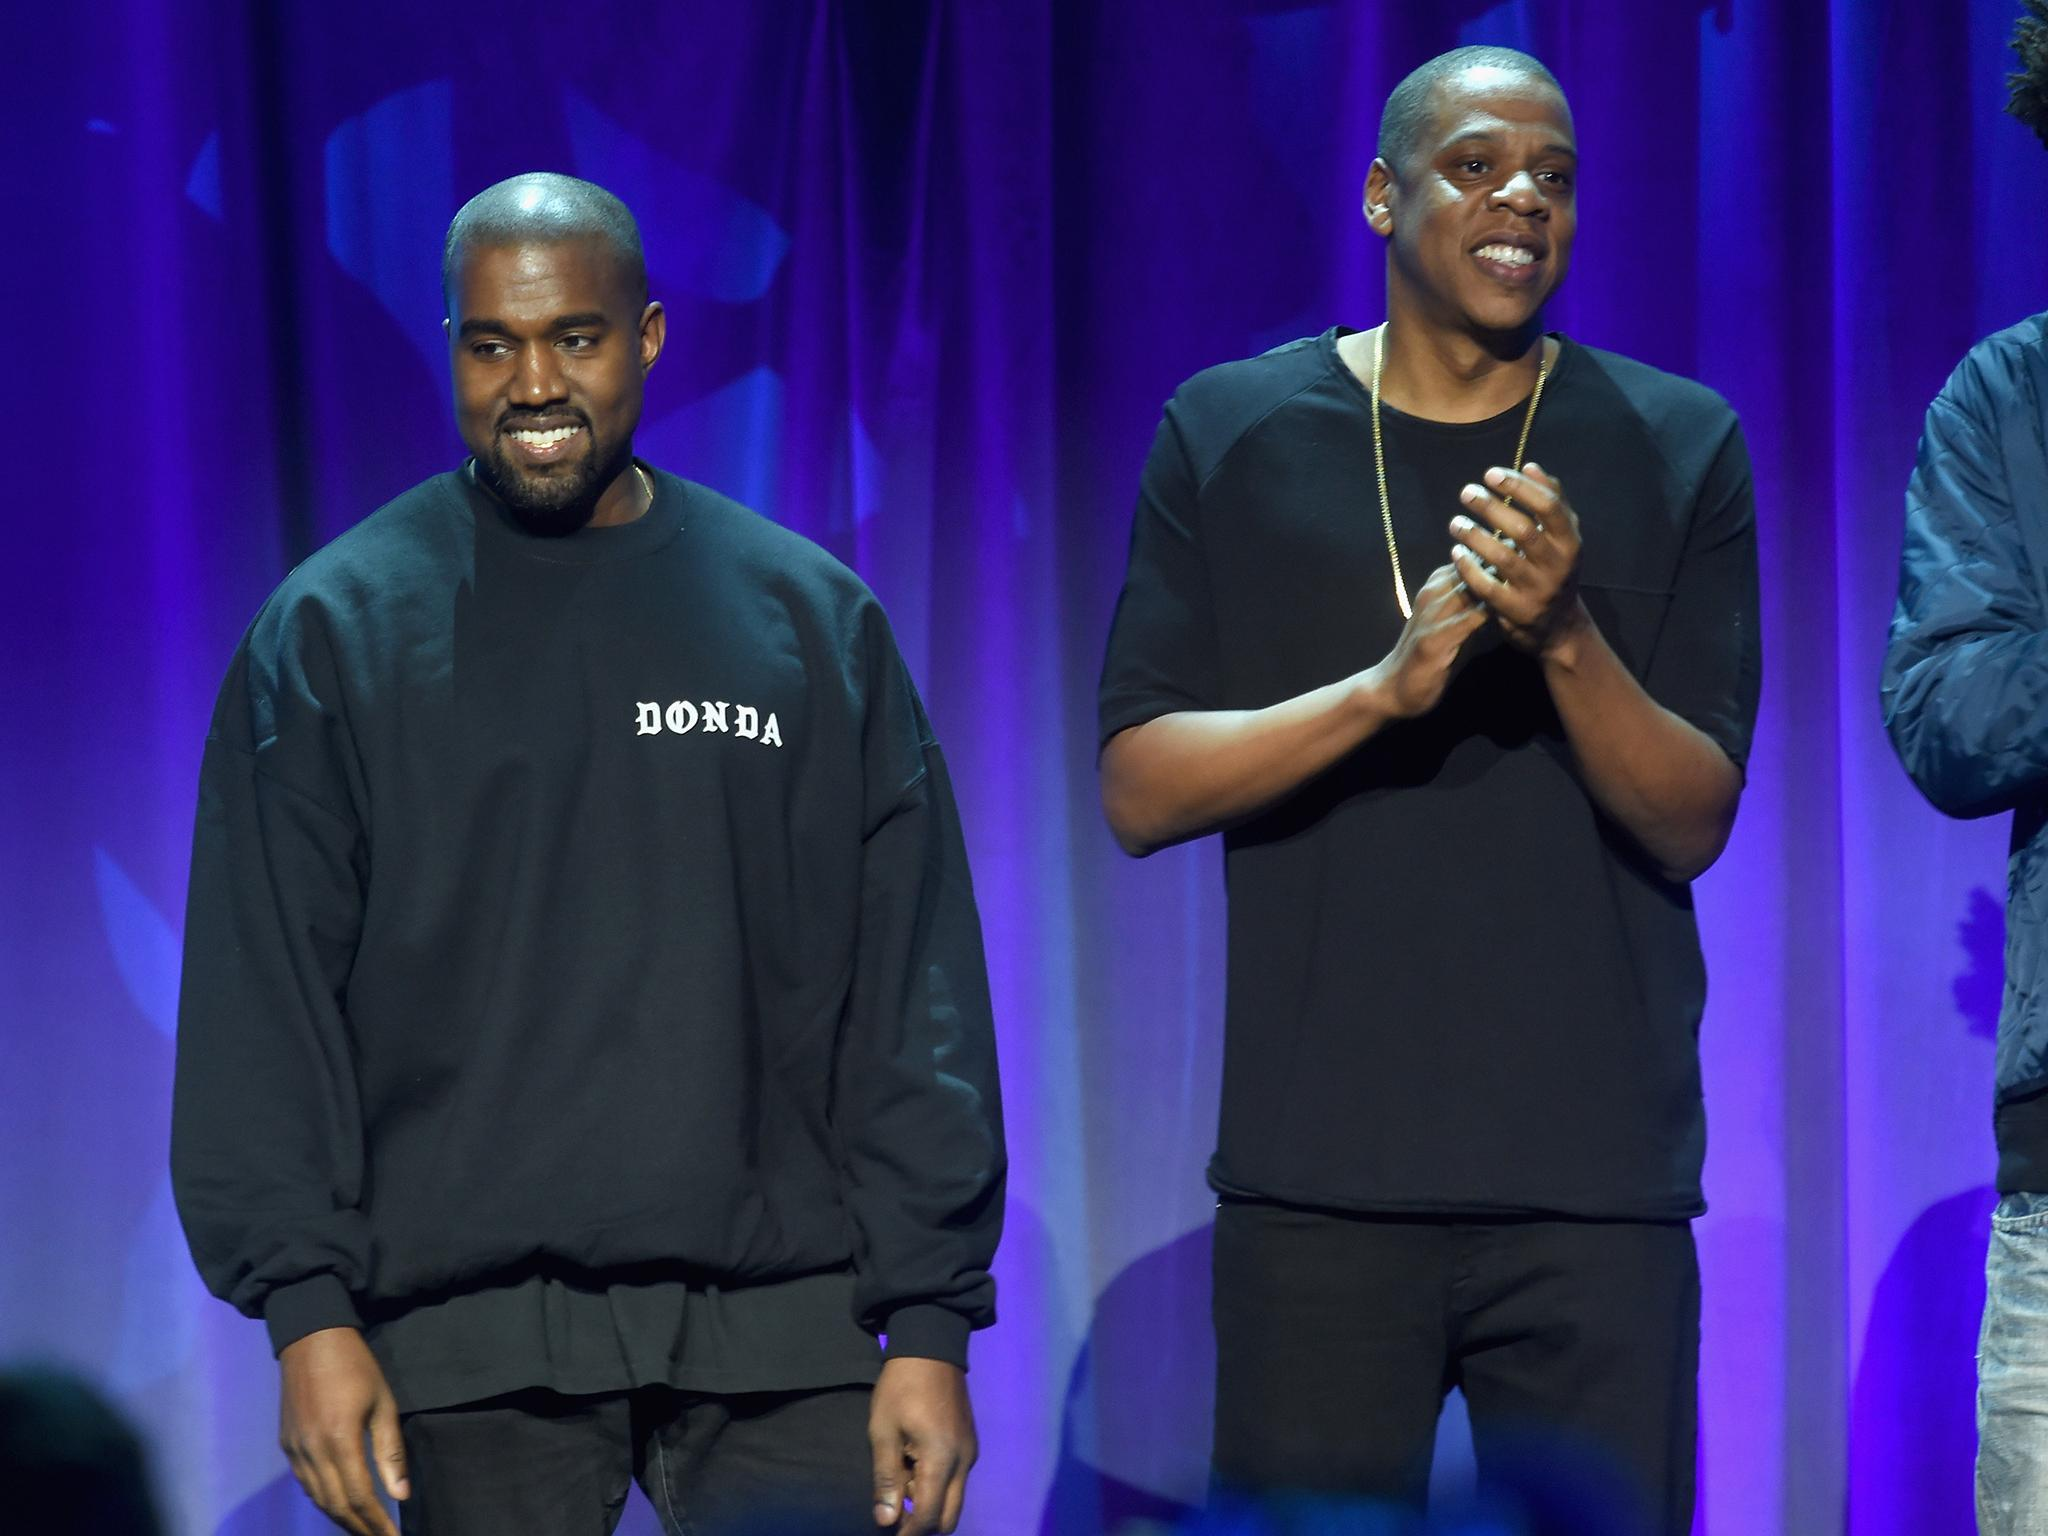 jay z speaks out on kanye west feud and explains why he has real real problem with former. Black Bedroom Furniture Sets. Home Design Ideas